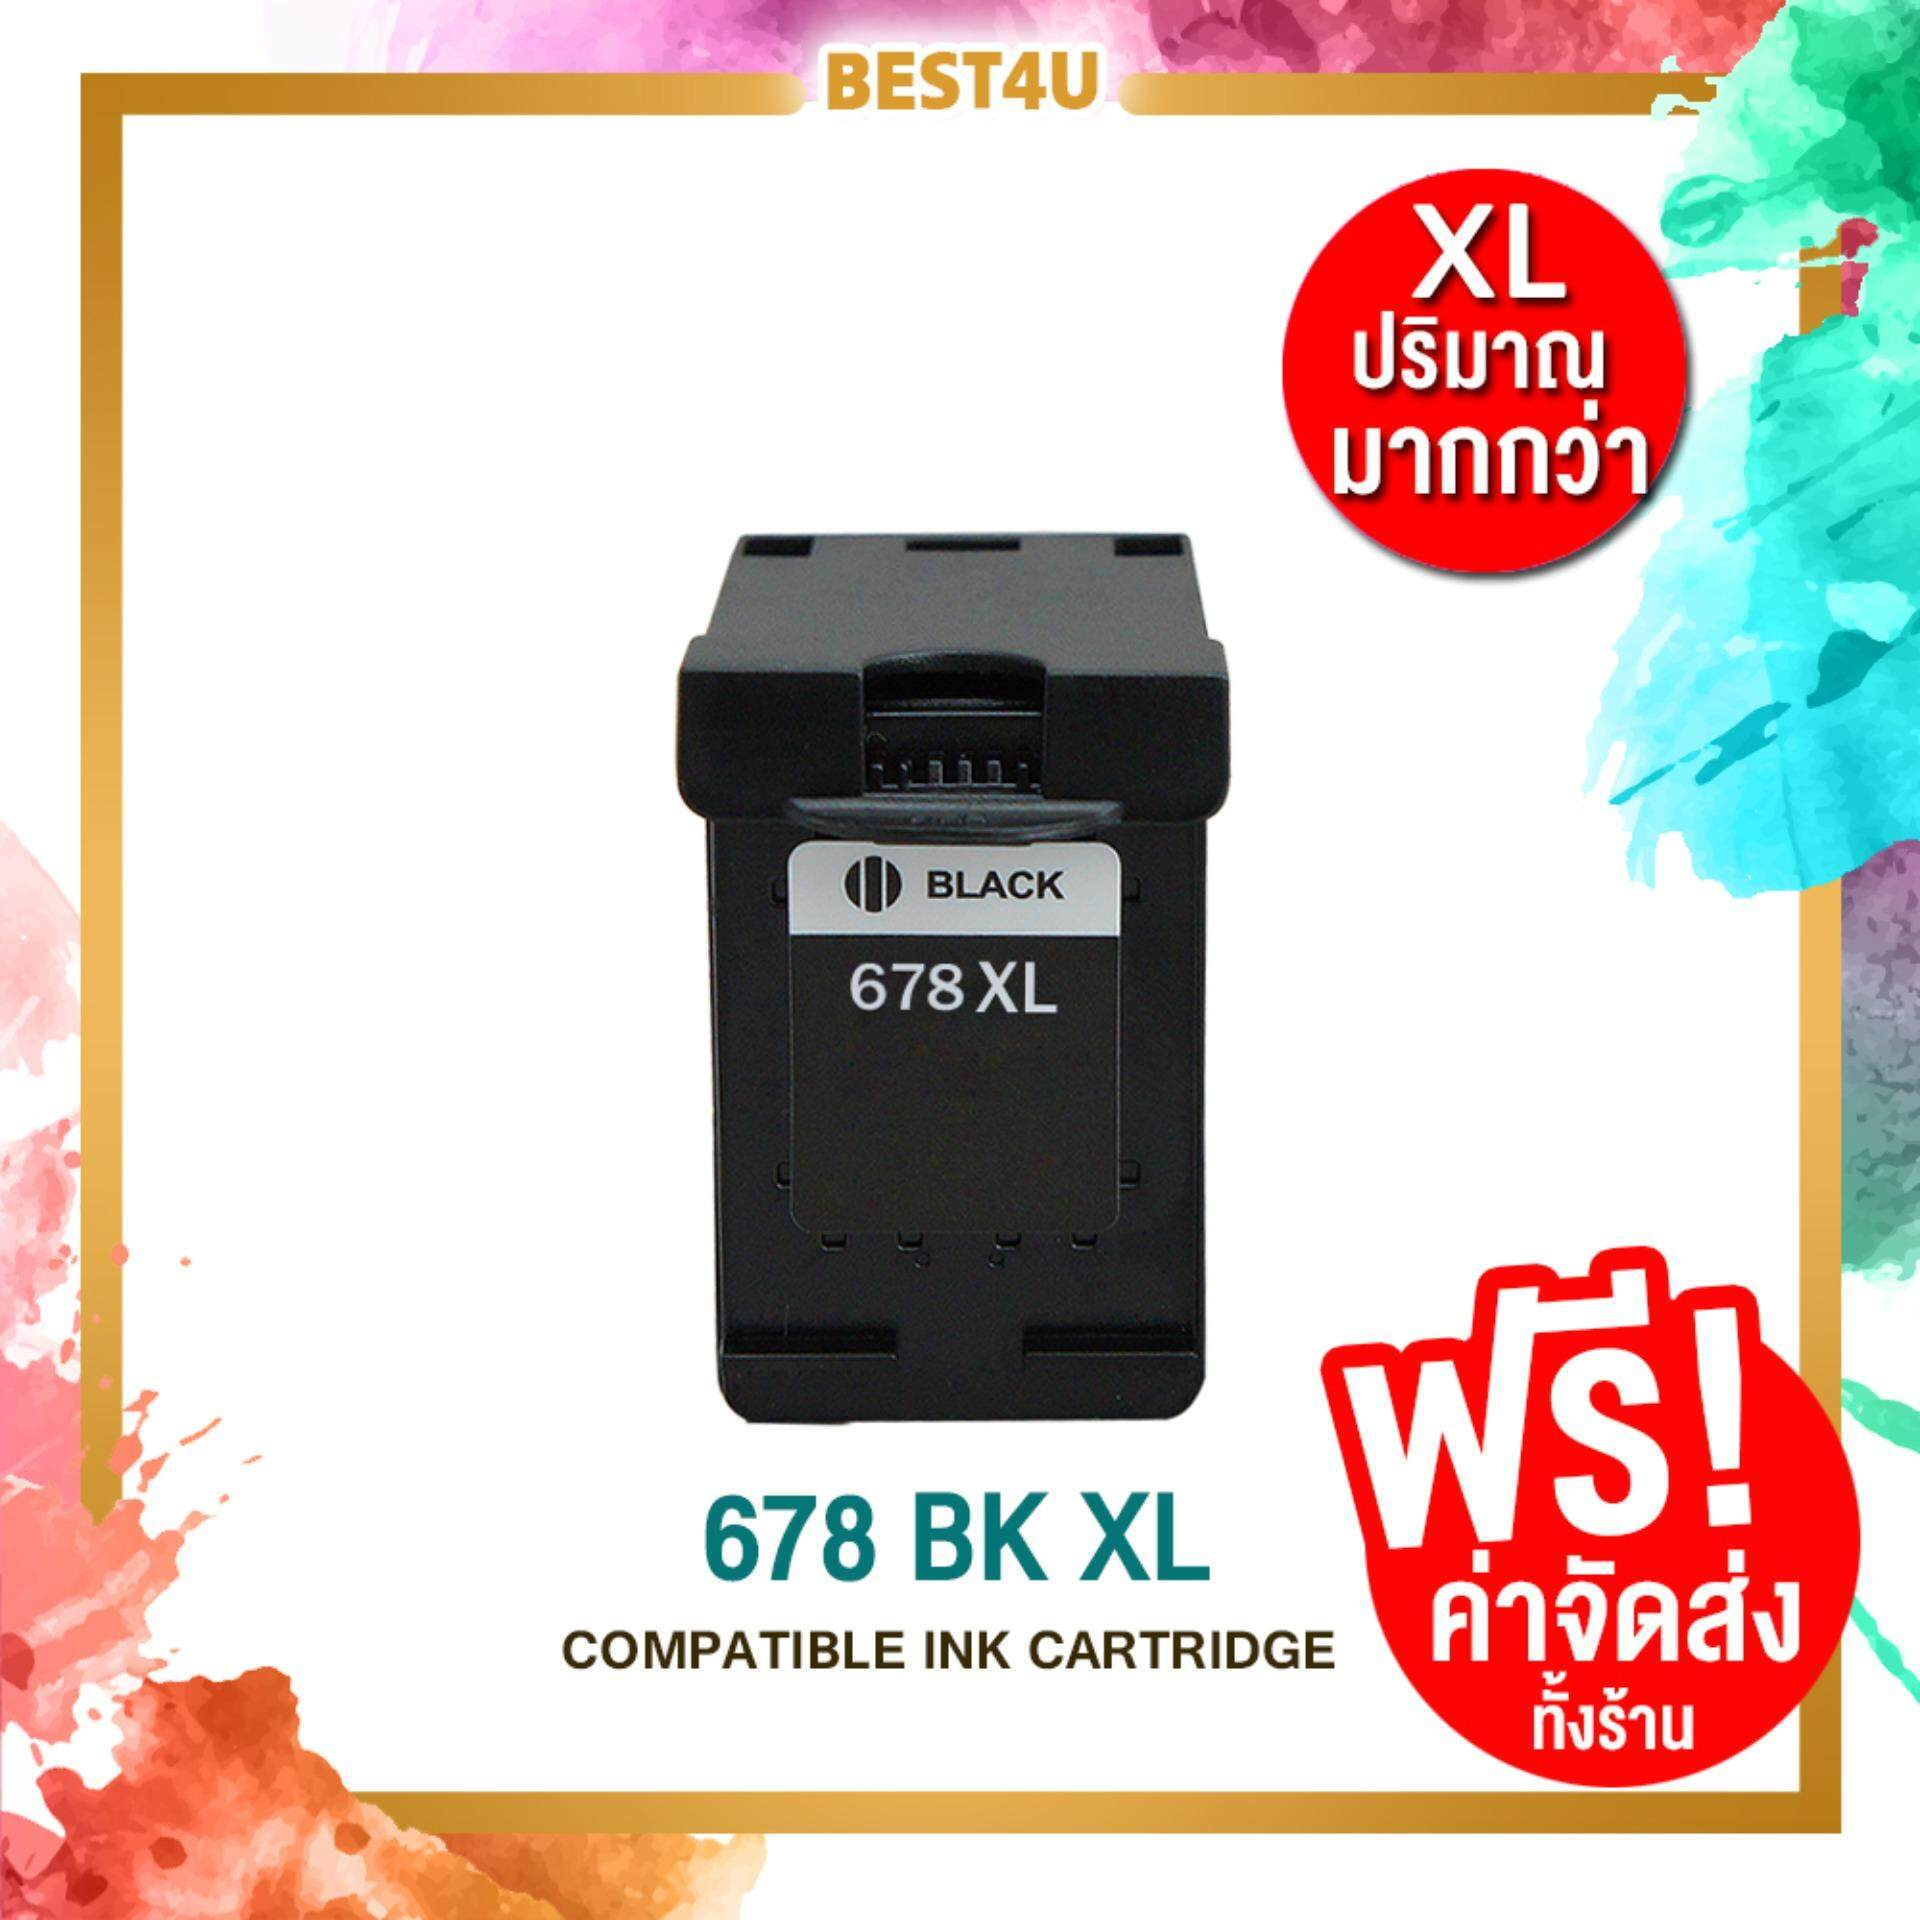 Best4u Ink ชุดตลับหมึก สำหรับ  678/678bk/678co For  Ink Printer Deskjet Ink Advantage 1015,1515,1518, 2515,2545,2548, 2645,2648,3515,3545,3548.